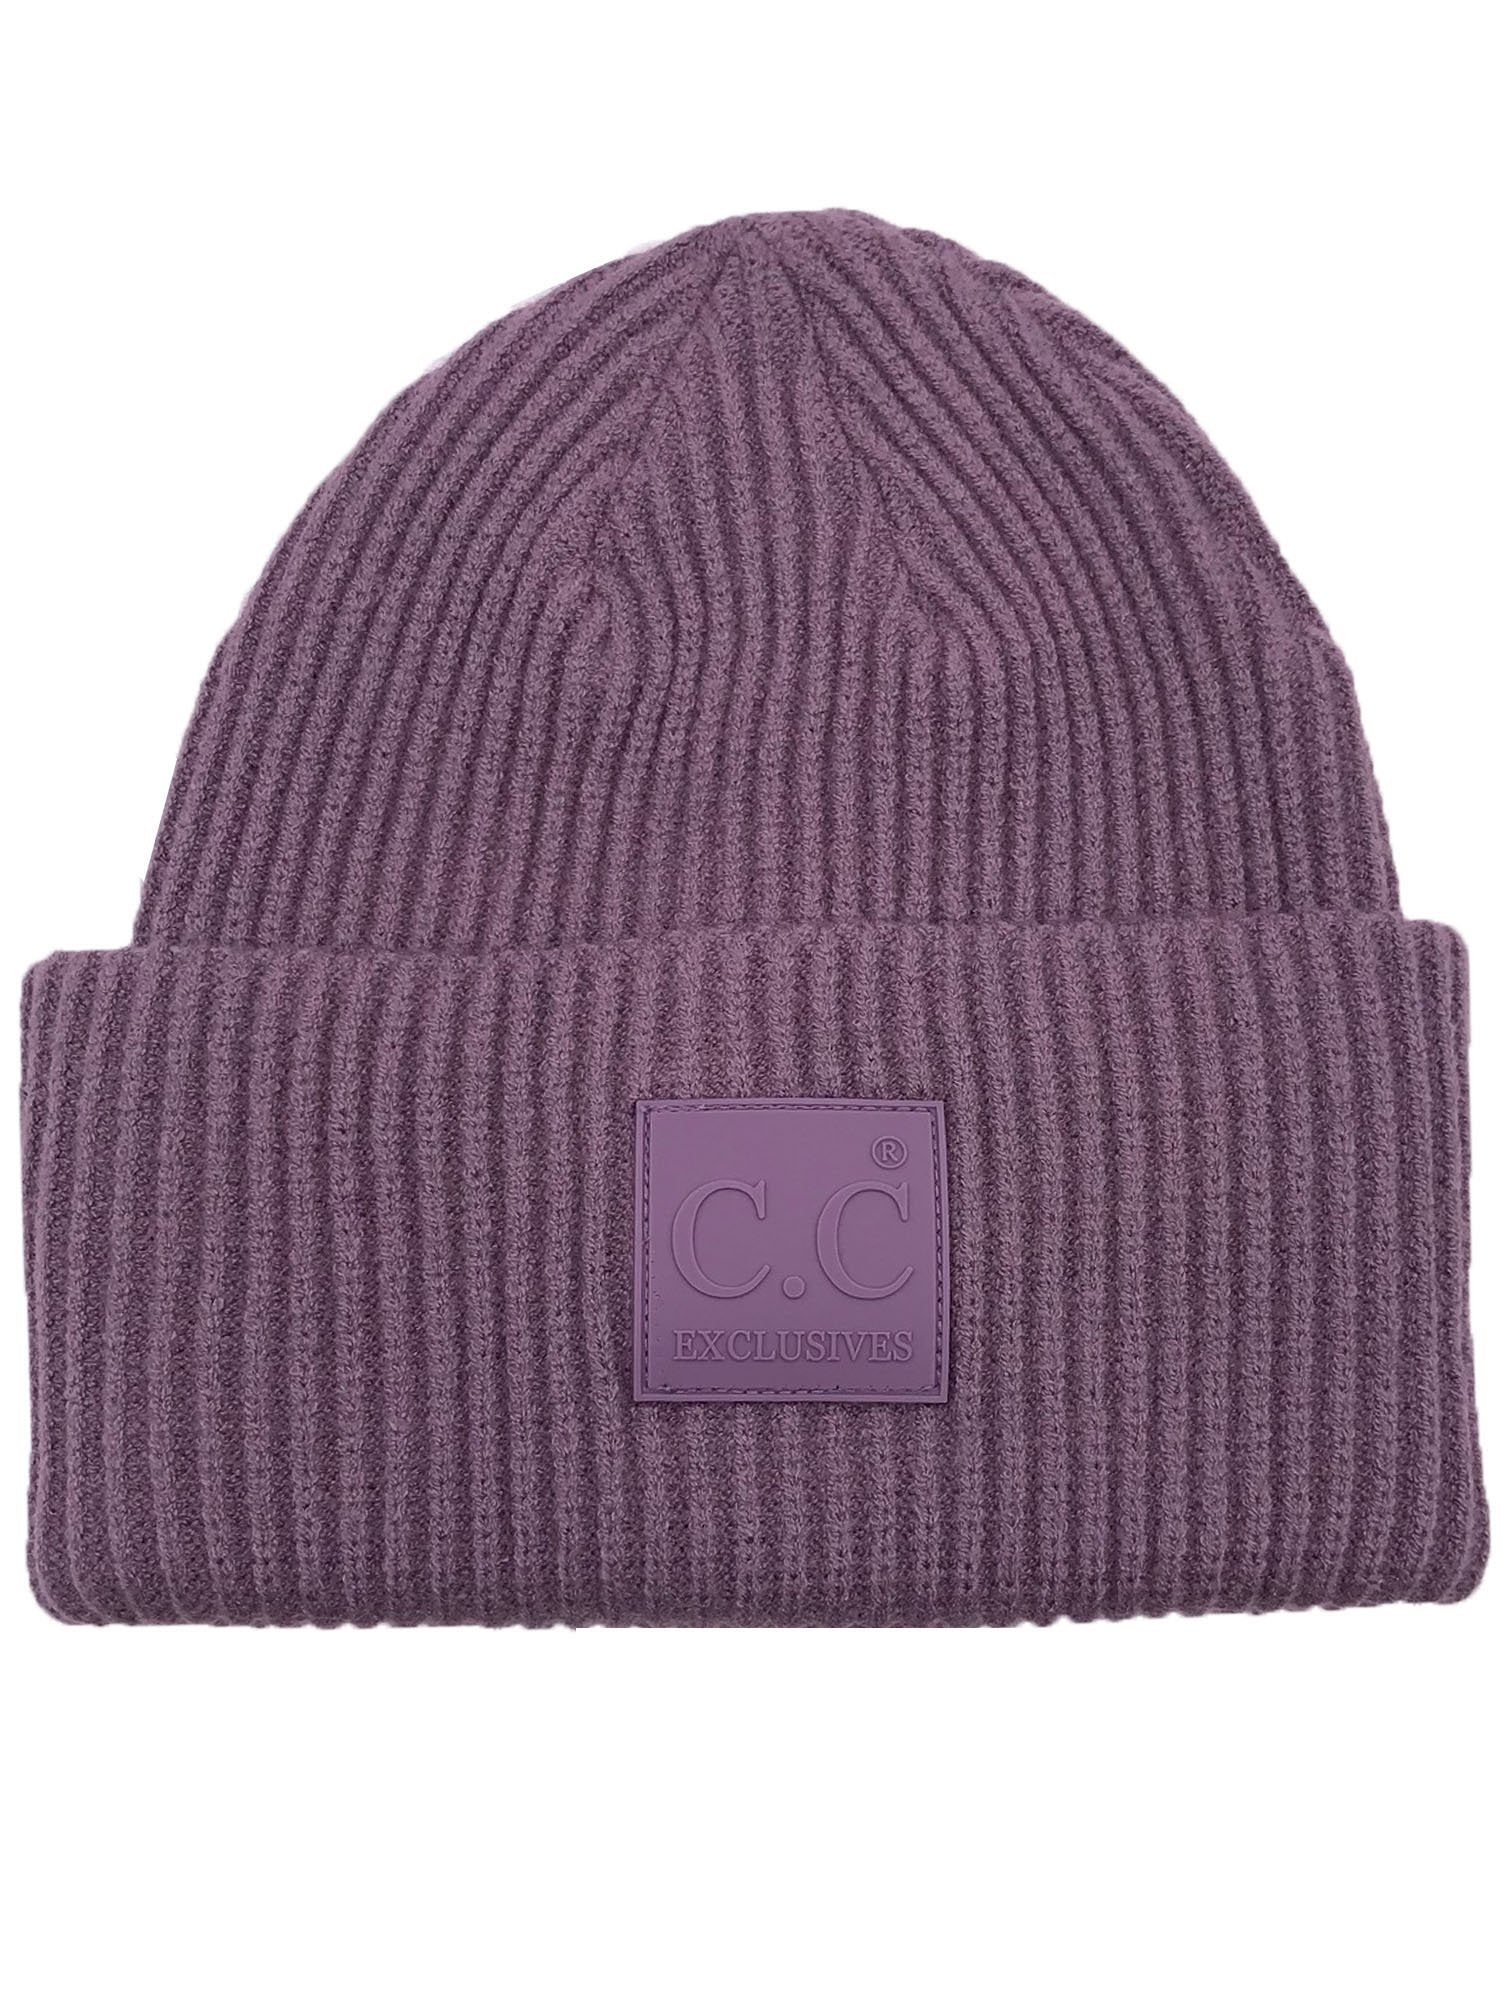 HAT-7007 Beanie with Rubber Patch Violet